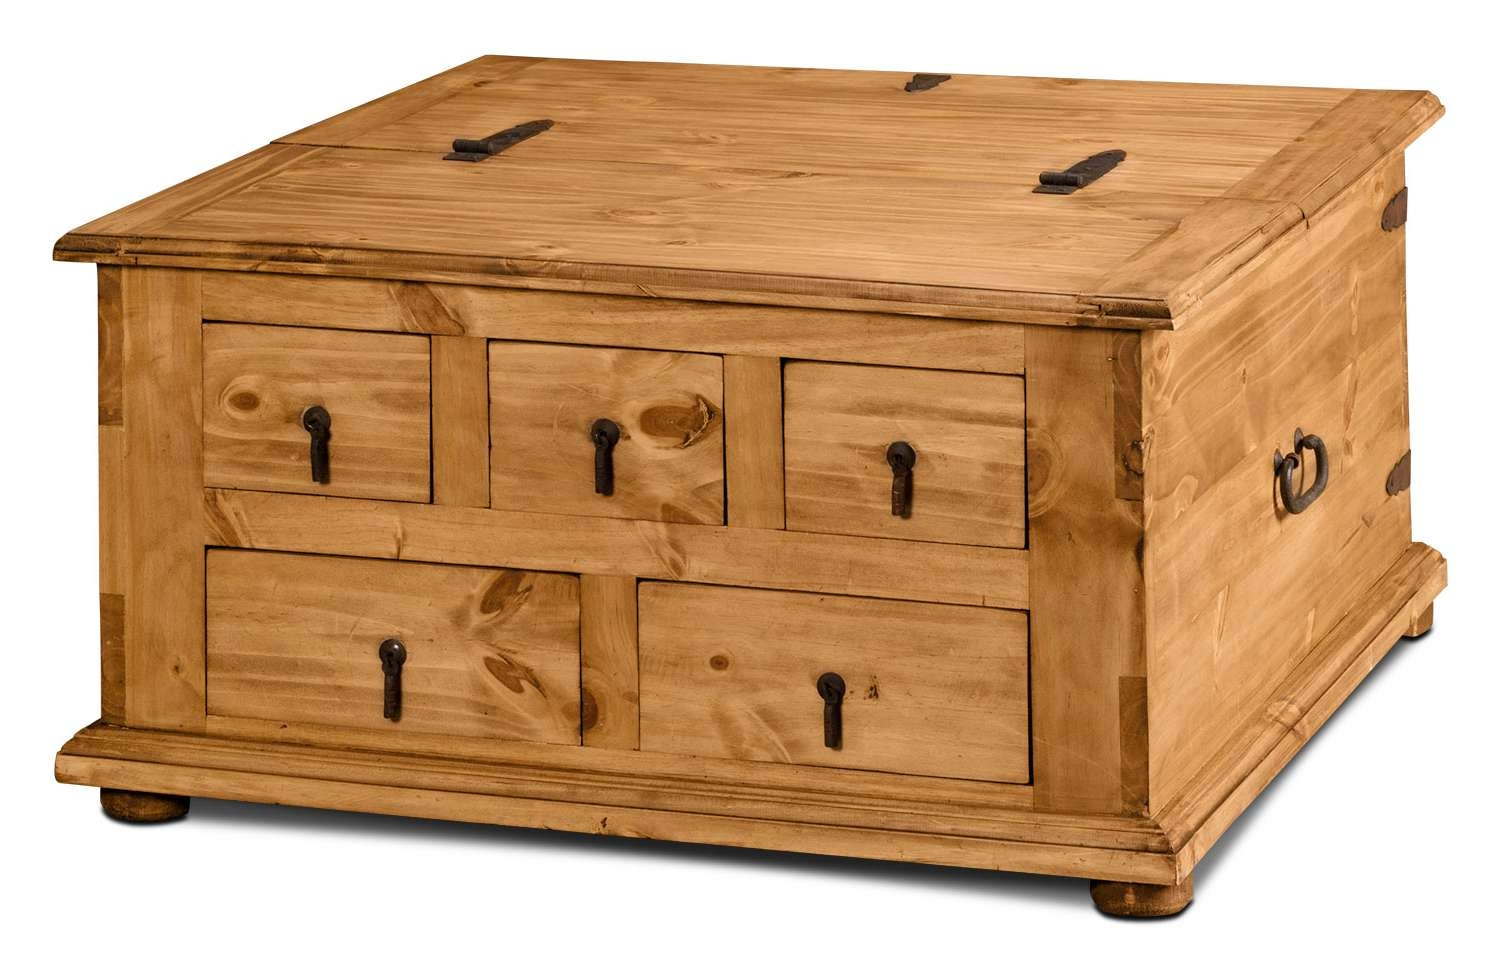 Famous Pine Coffee Tables With Storage In Santa Fe Rusticos Solid Trunk Style Table